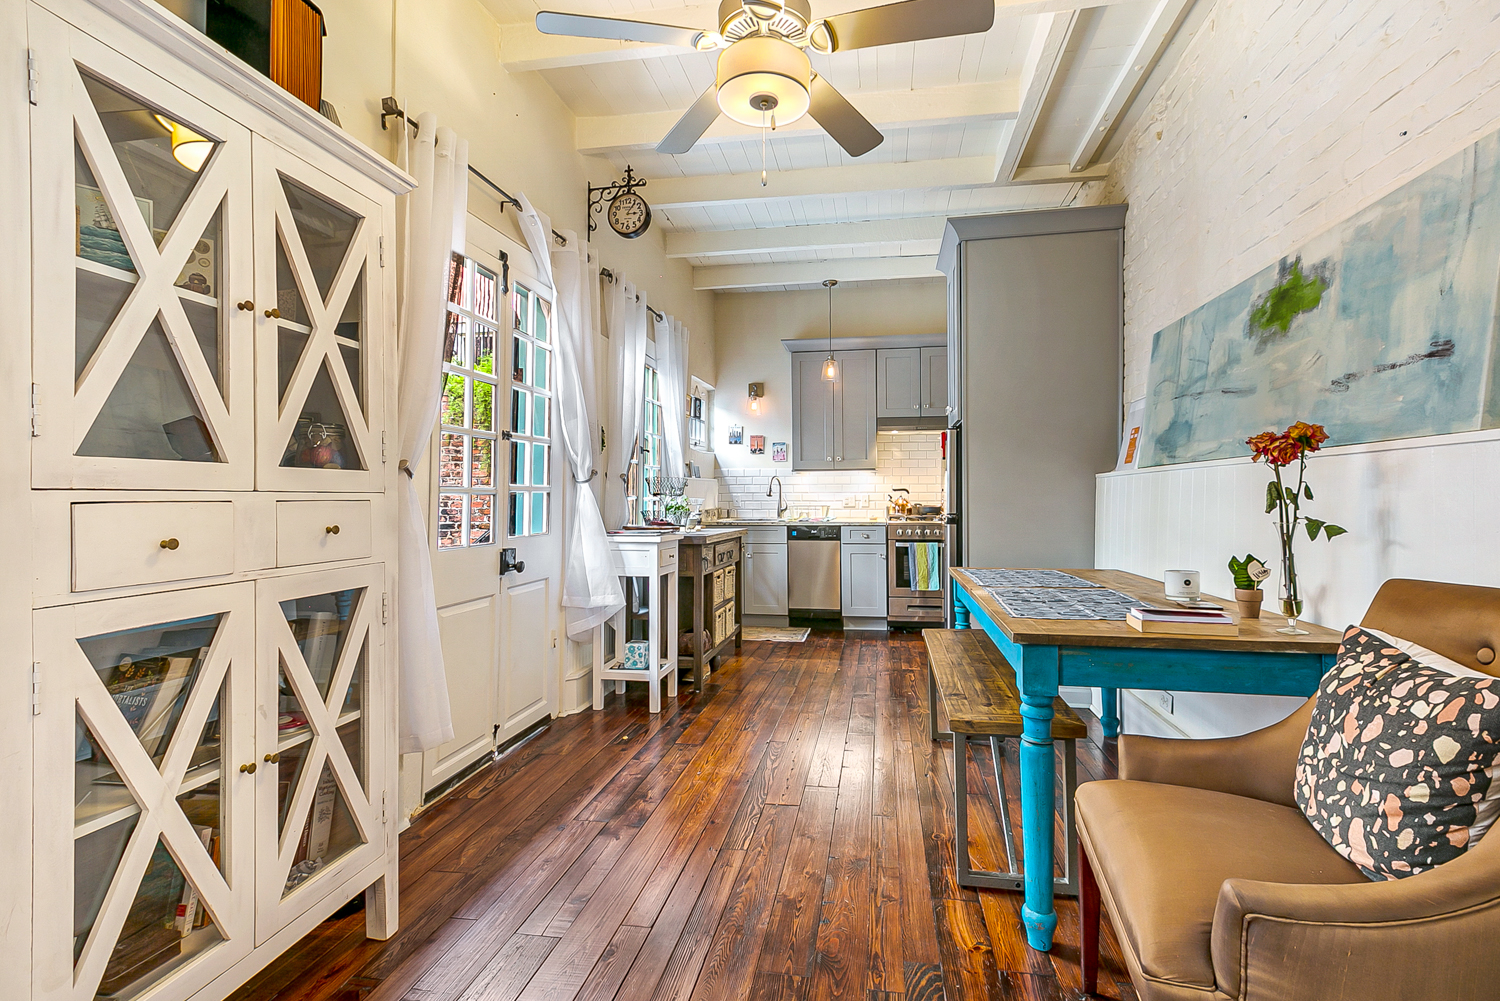 French Quarter, Condo, 1 beds, 2.0 baths, $2400 per month New Orleans Rental - devie image_2